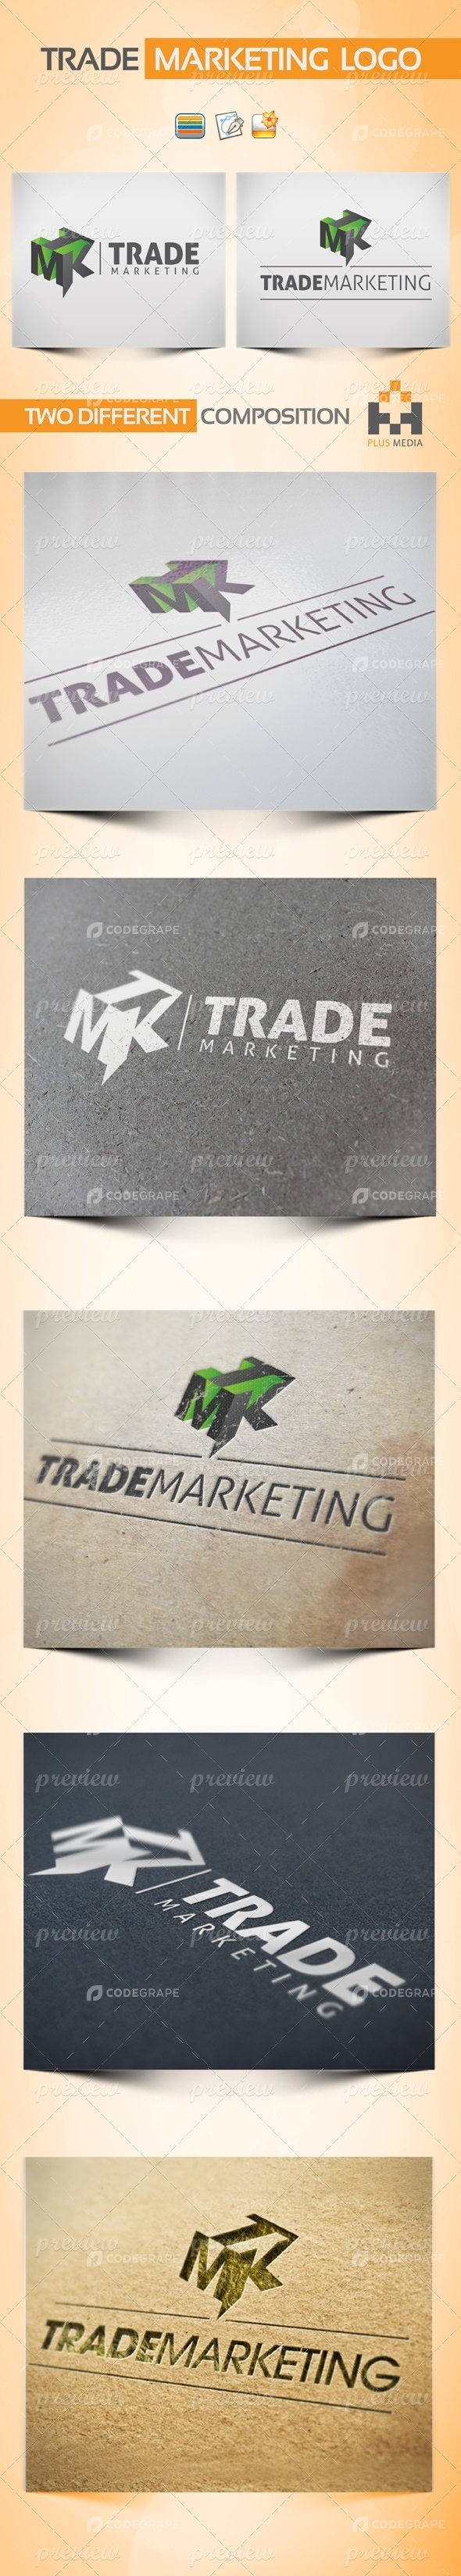 Trade Marketing Logotype